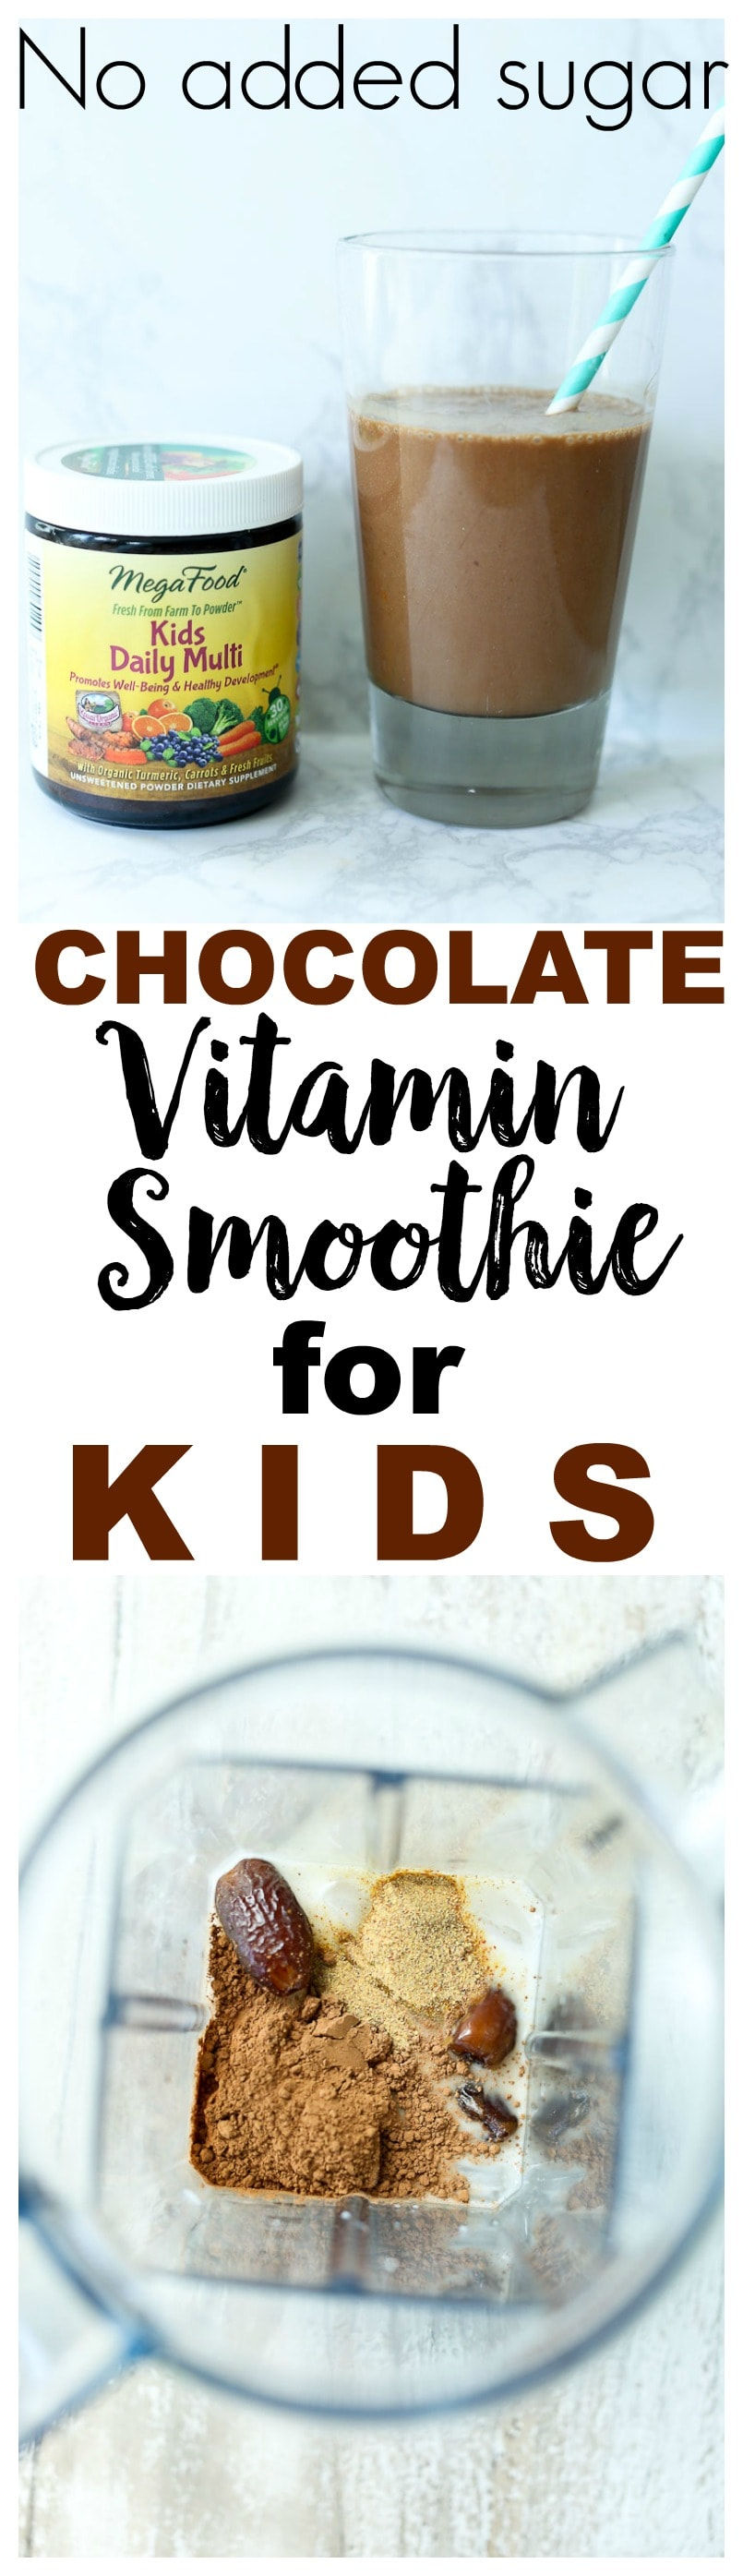 MegaFood Kids Daily Multi Review Chocolate Vitamin Smoothie for Kids